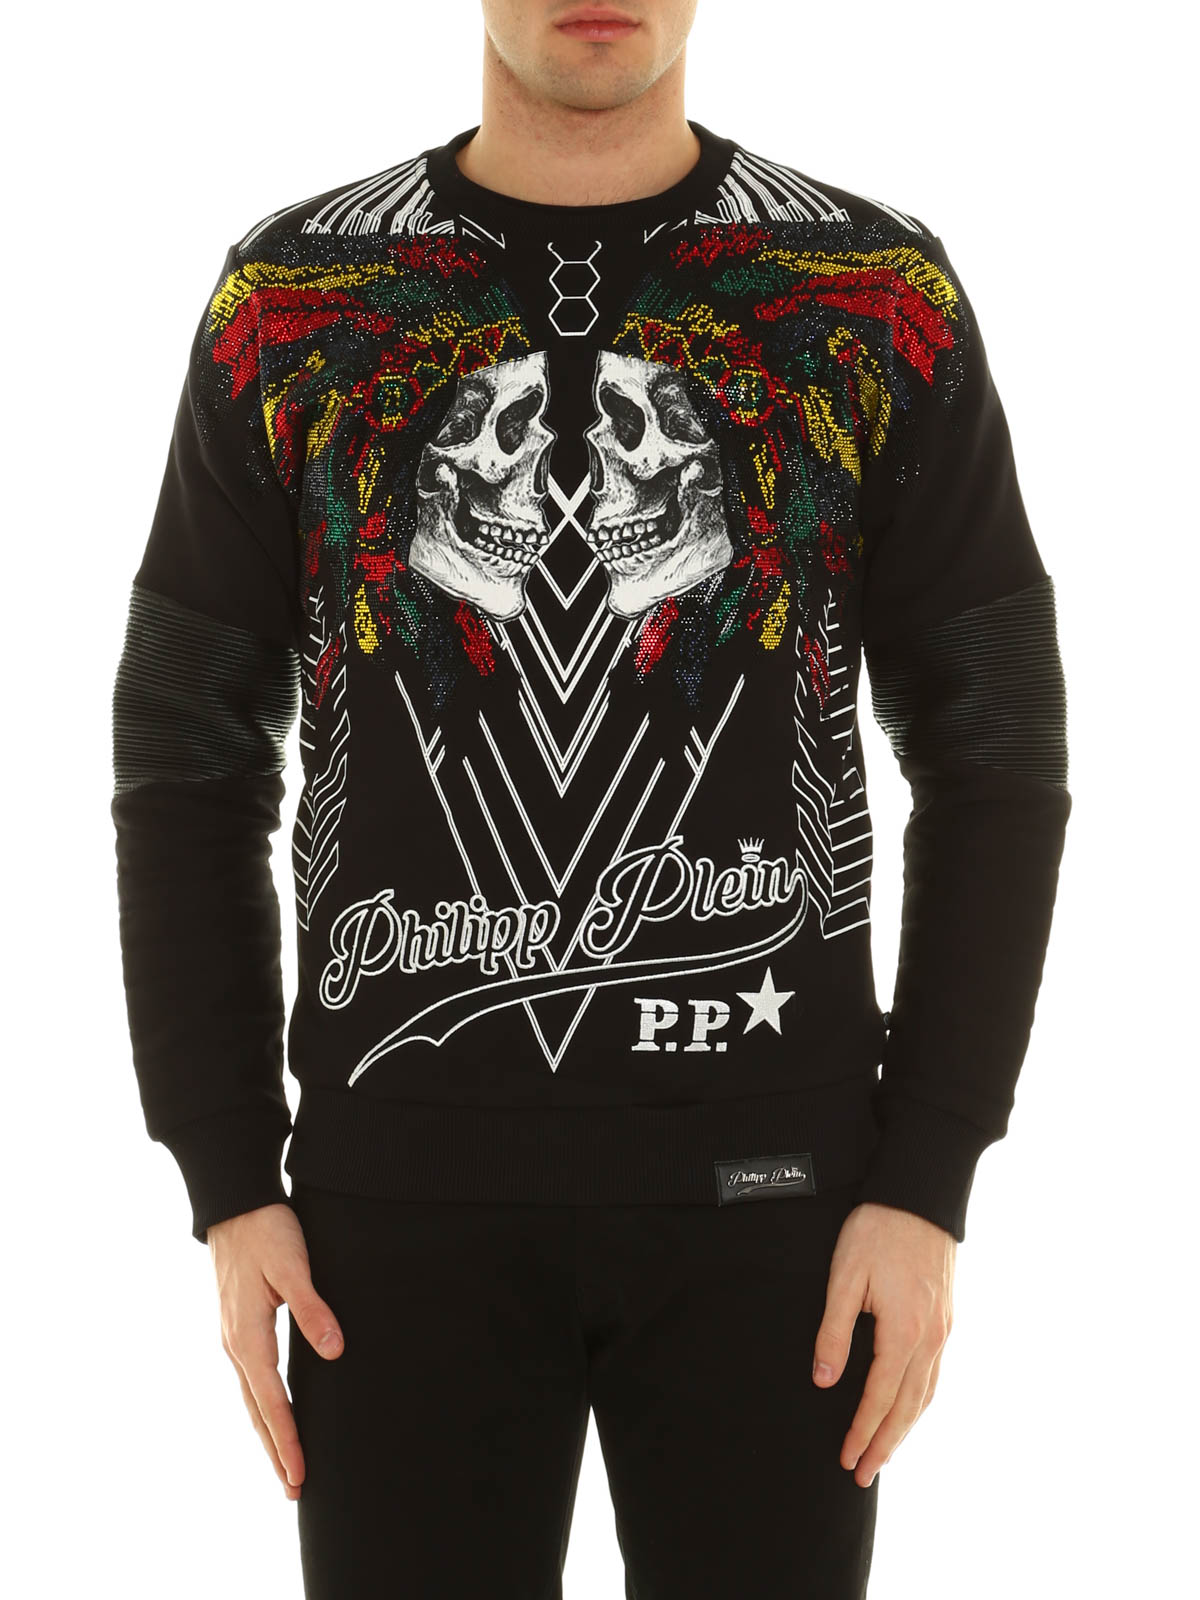 embellished chunta sweatshirt by philipp plein sweatshirts sweaters ikrix. Black Bedroom Furniture Sets. Home Design Ideas